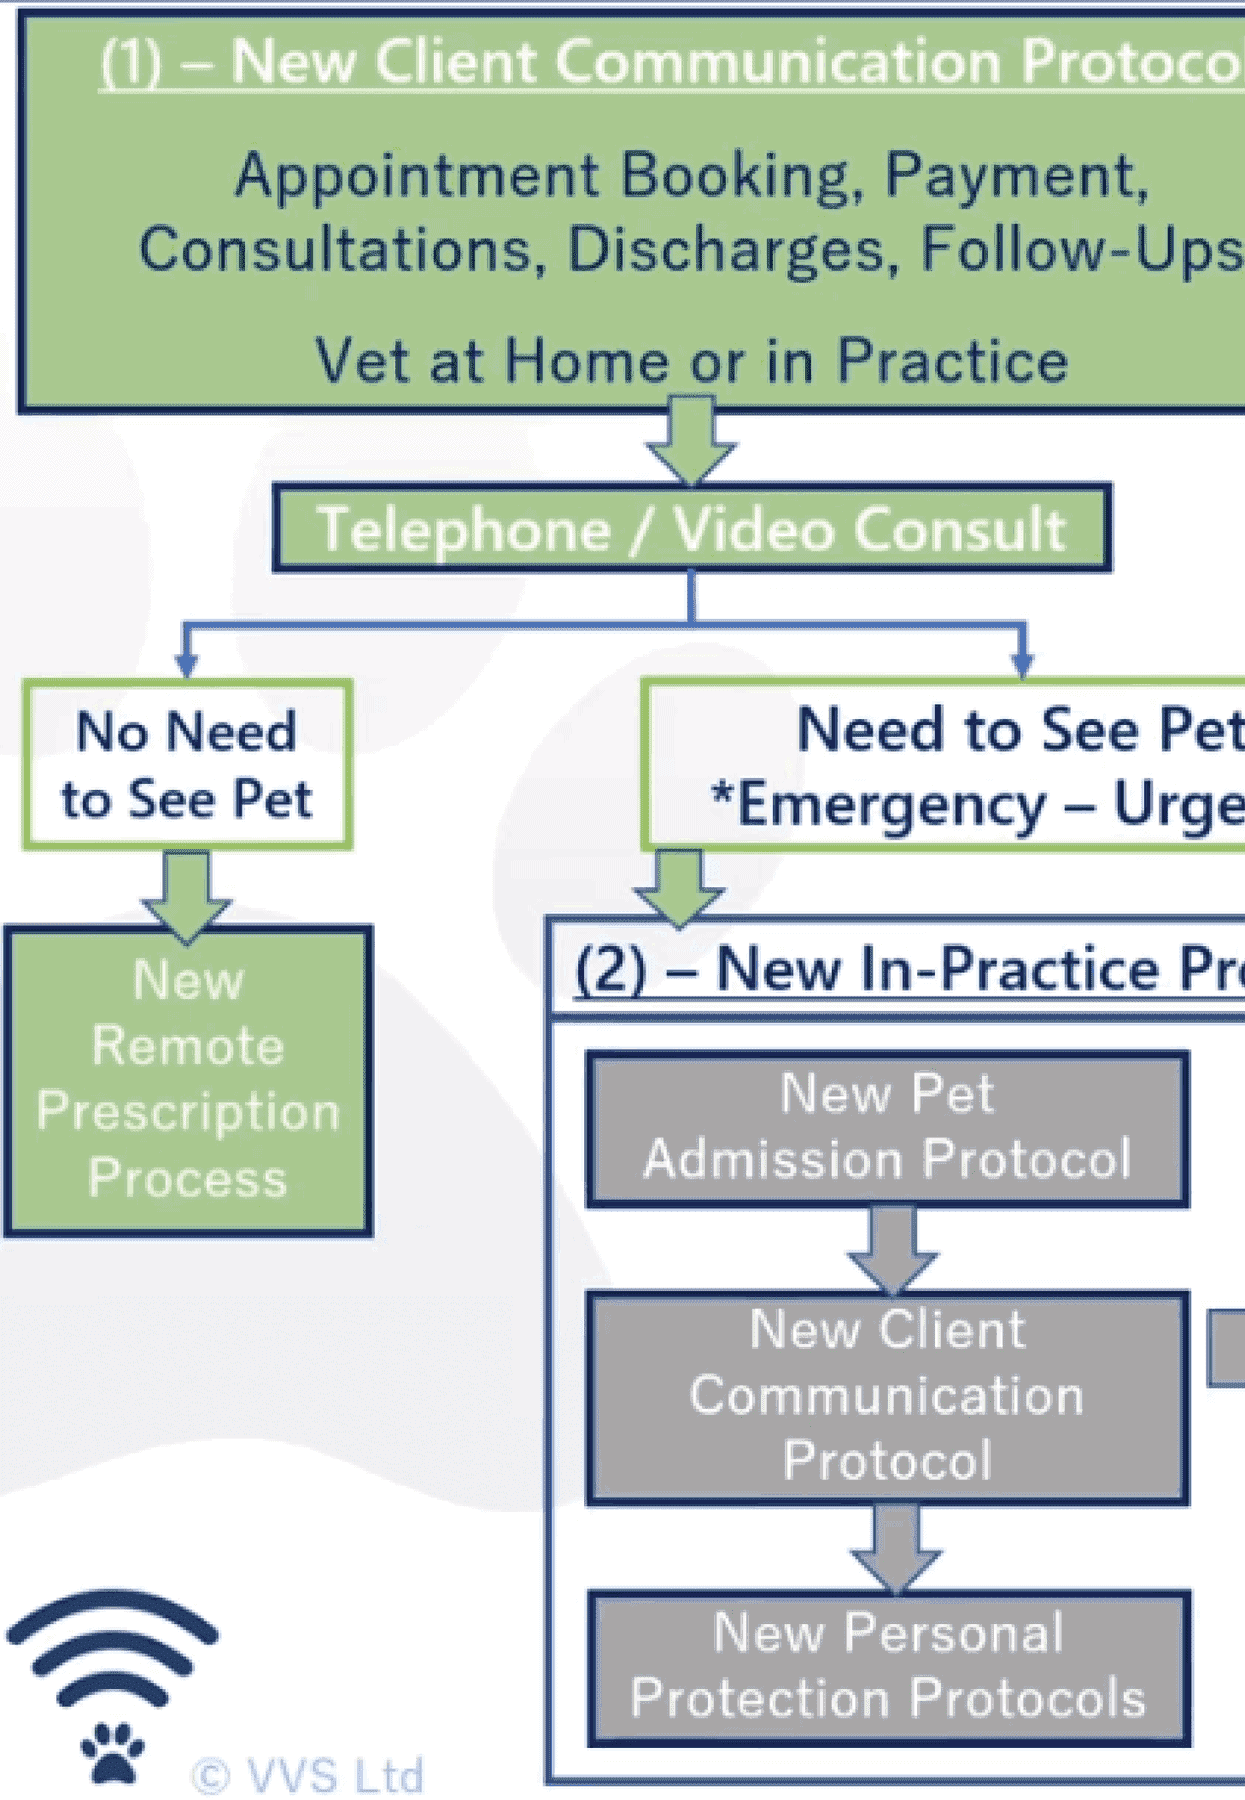 Using telemedicine to deliver veterinary care under COVID-19 restrictions